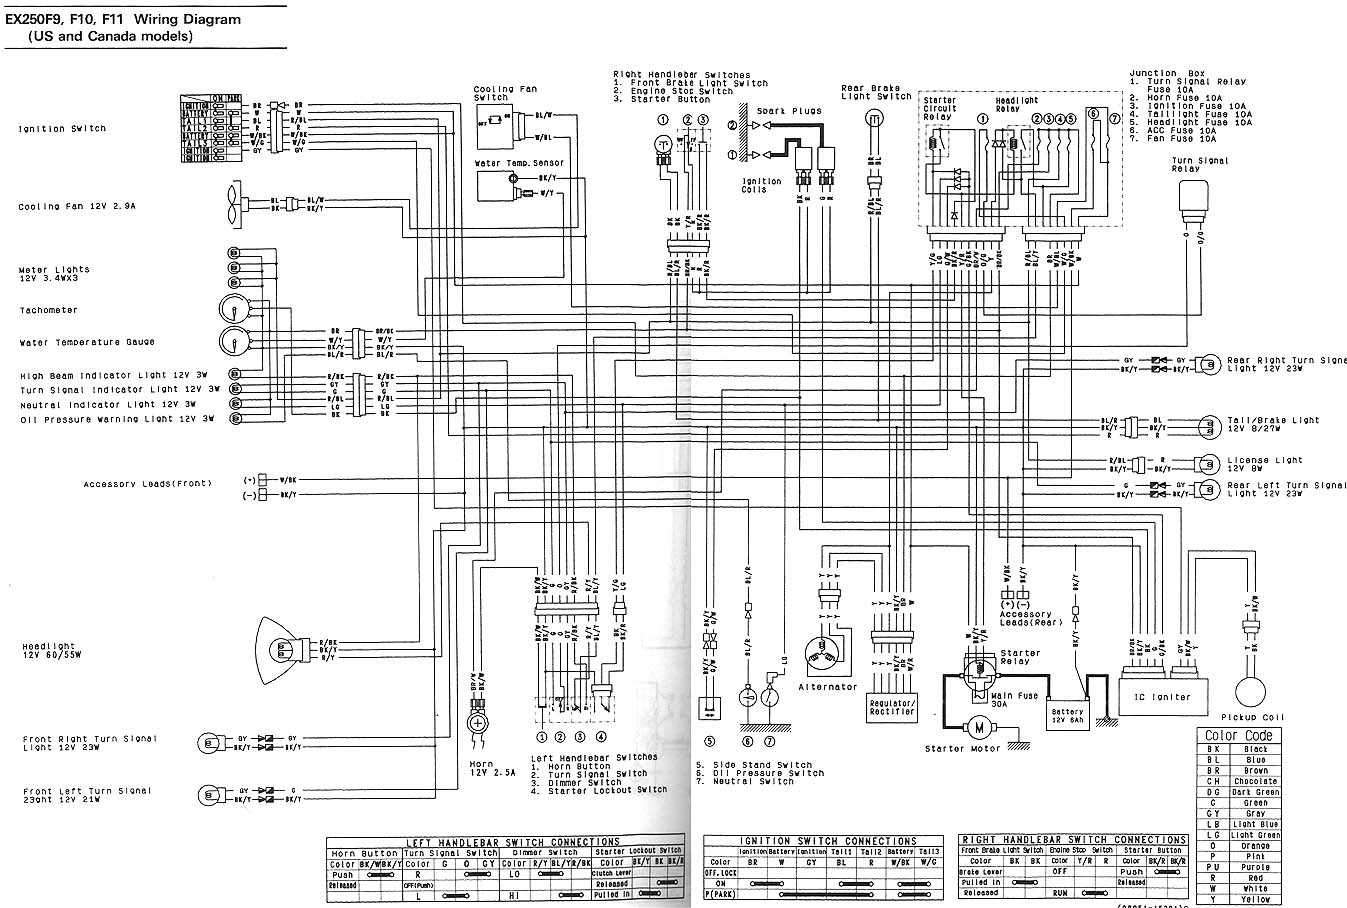 Kawasaki 800 Wiring Diagram Schematic Diagrams Hisun 1998 Vulcan Trusted 1993 Suzuki 250 4 Wheeler Wire